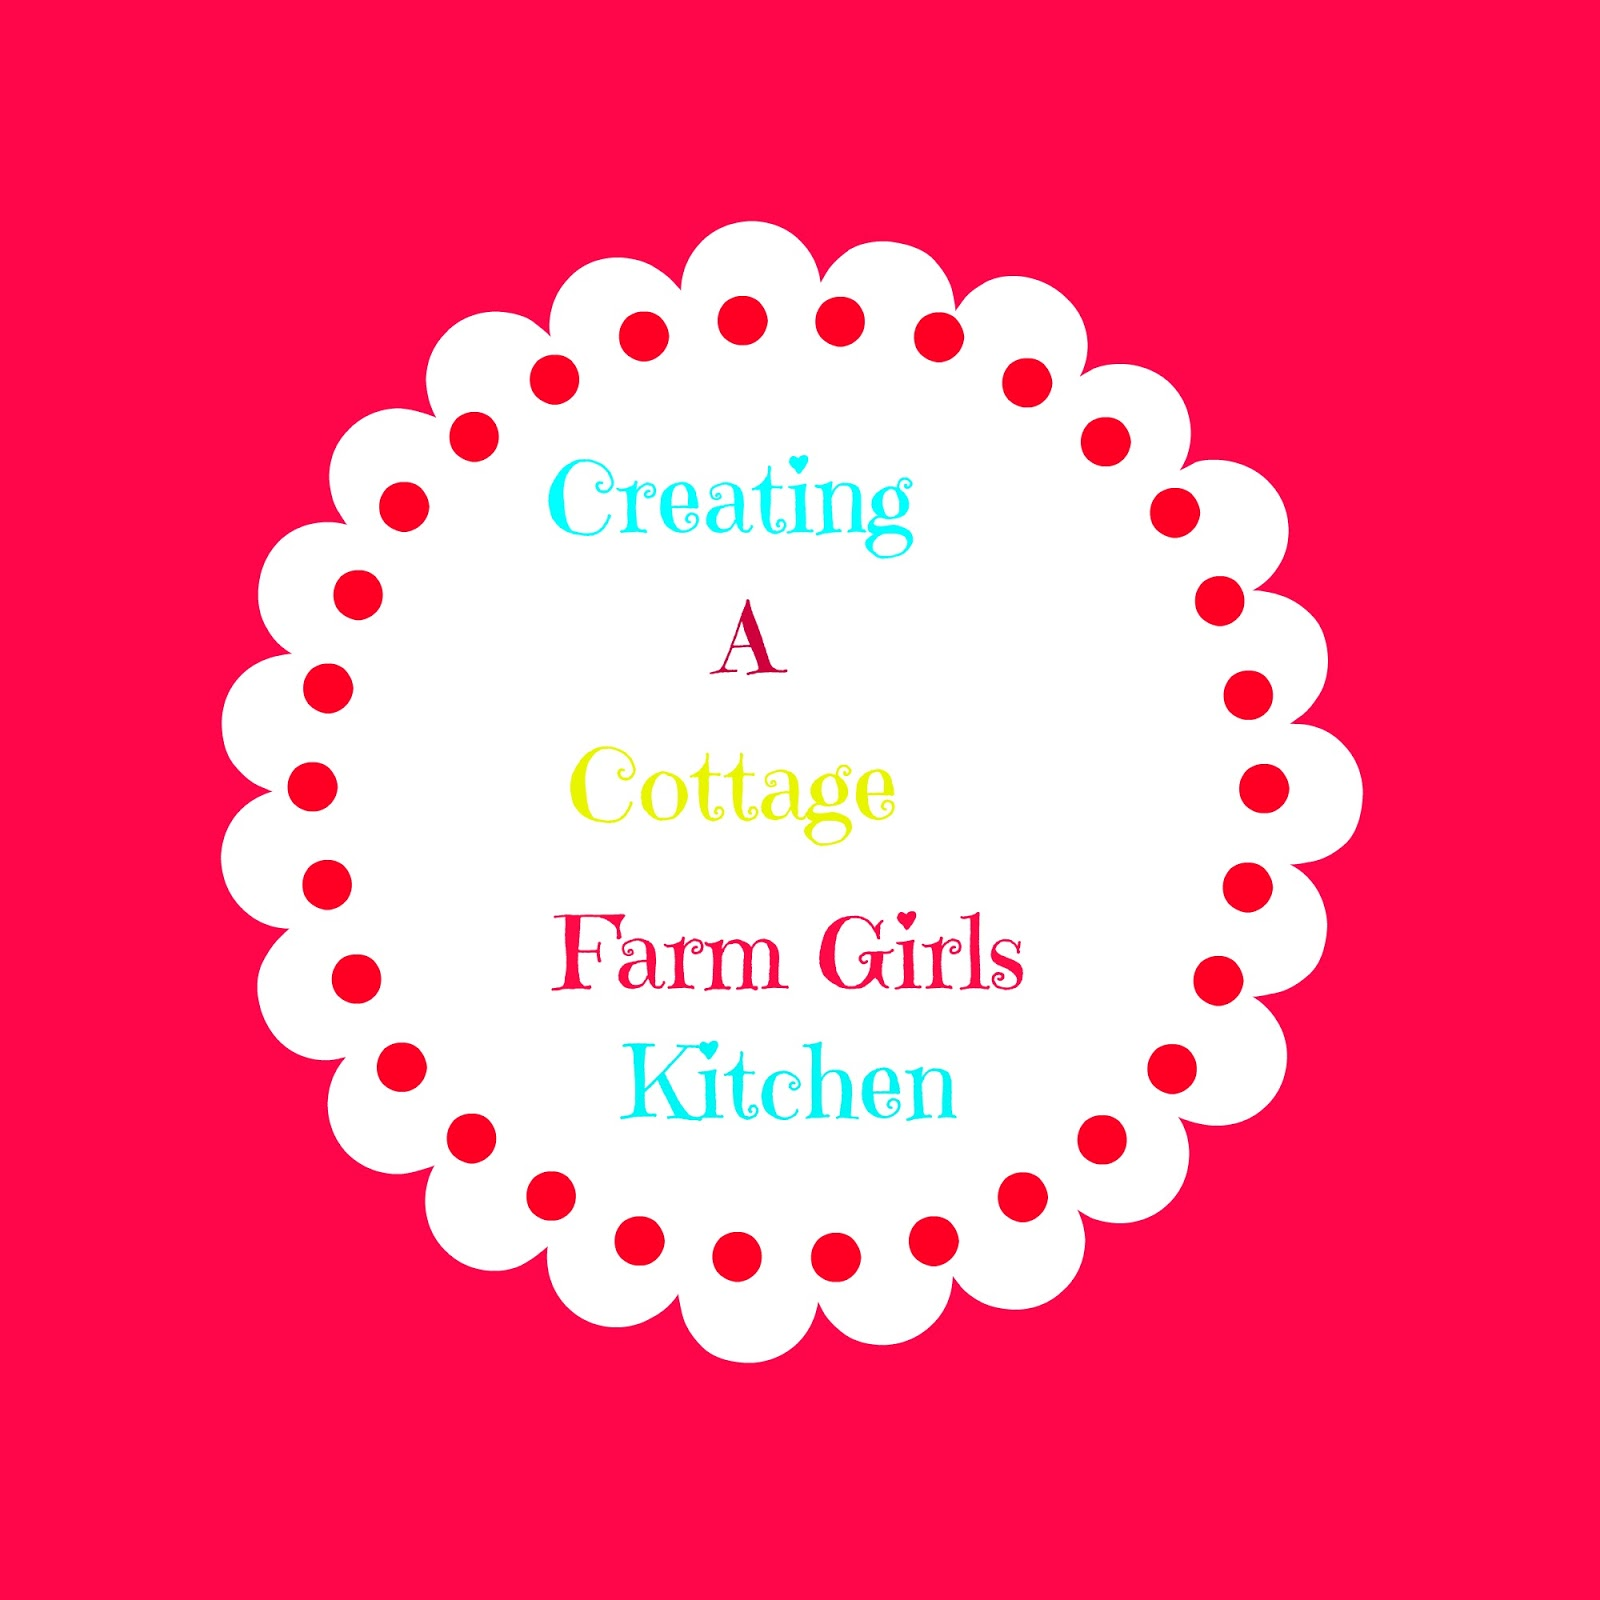 Creating A Cottage Farmgirl's Kitchen